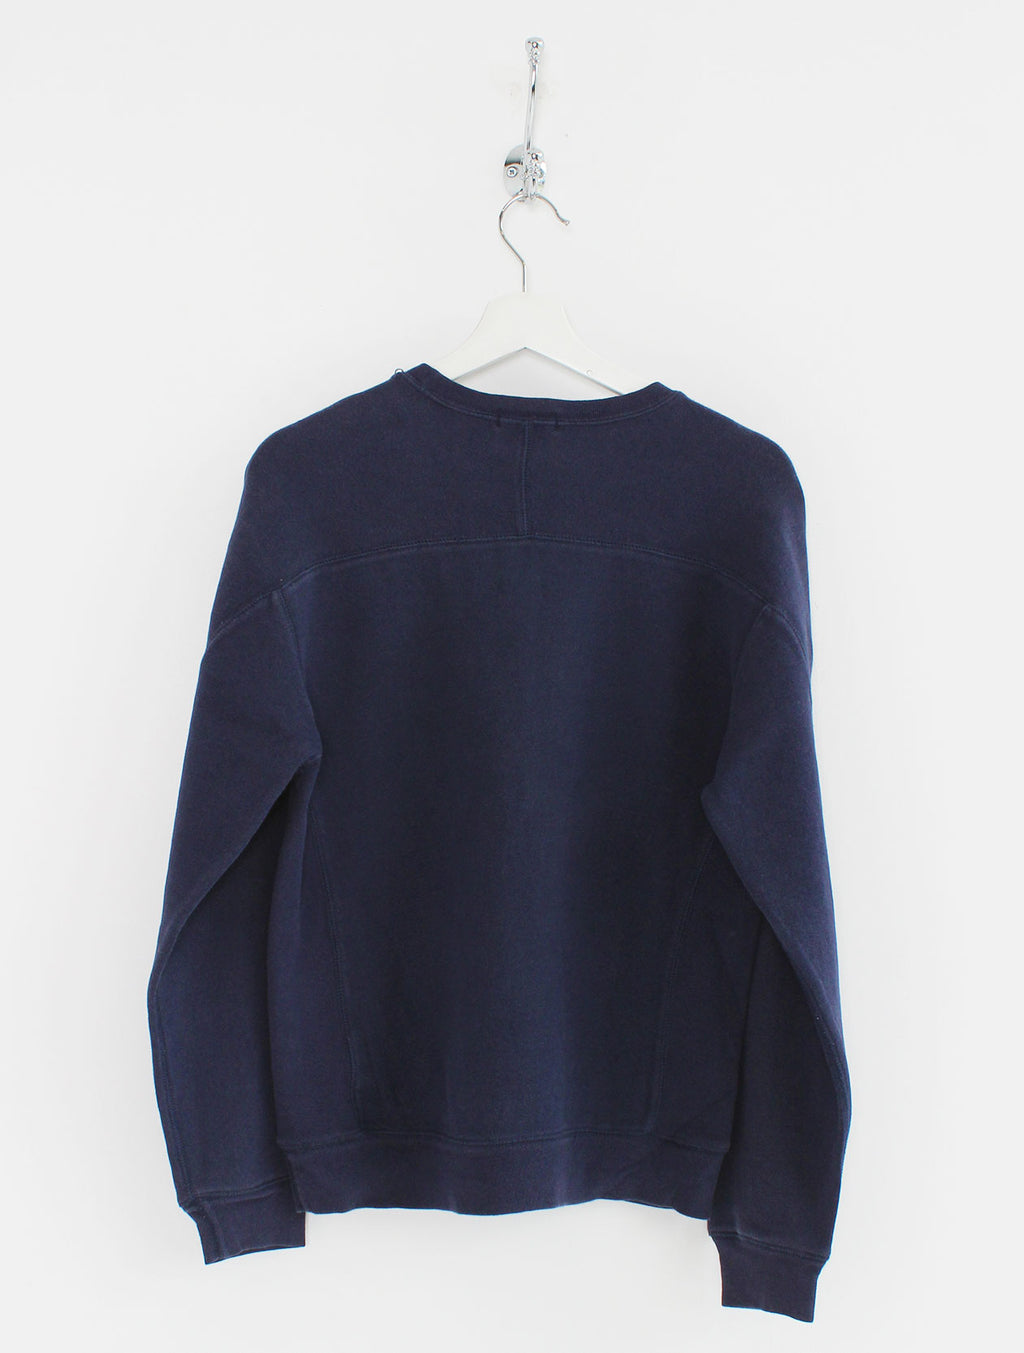 Women's Ralph Lauren Sweatshirt (M)